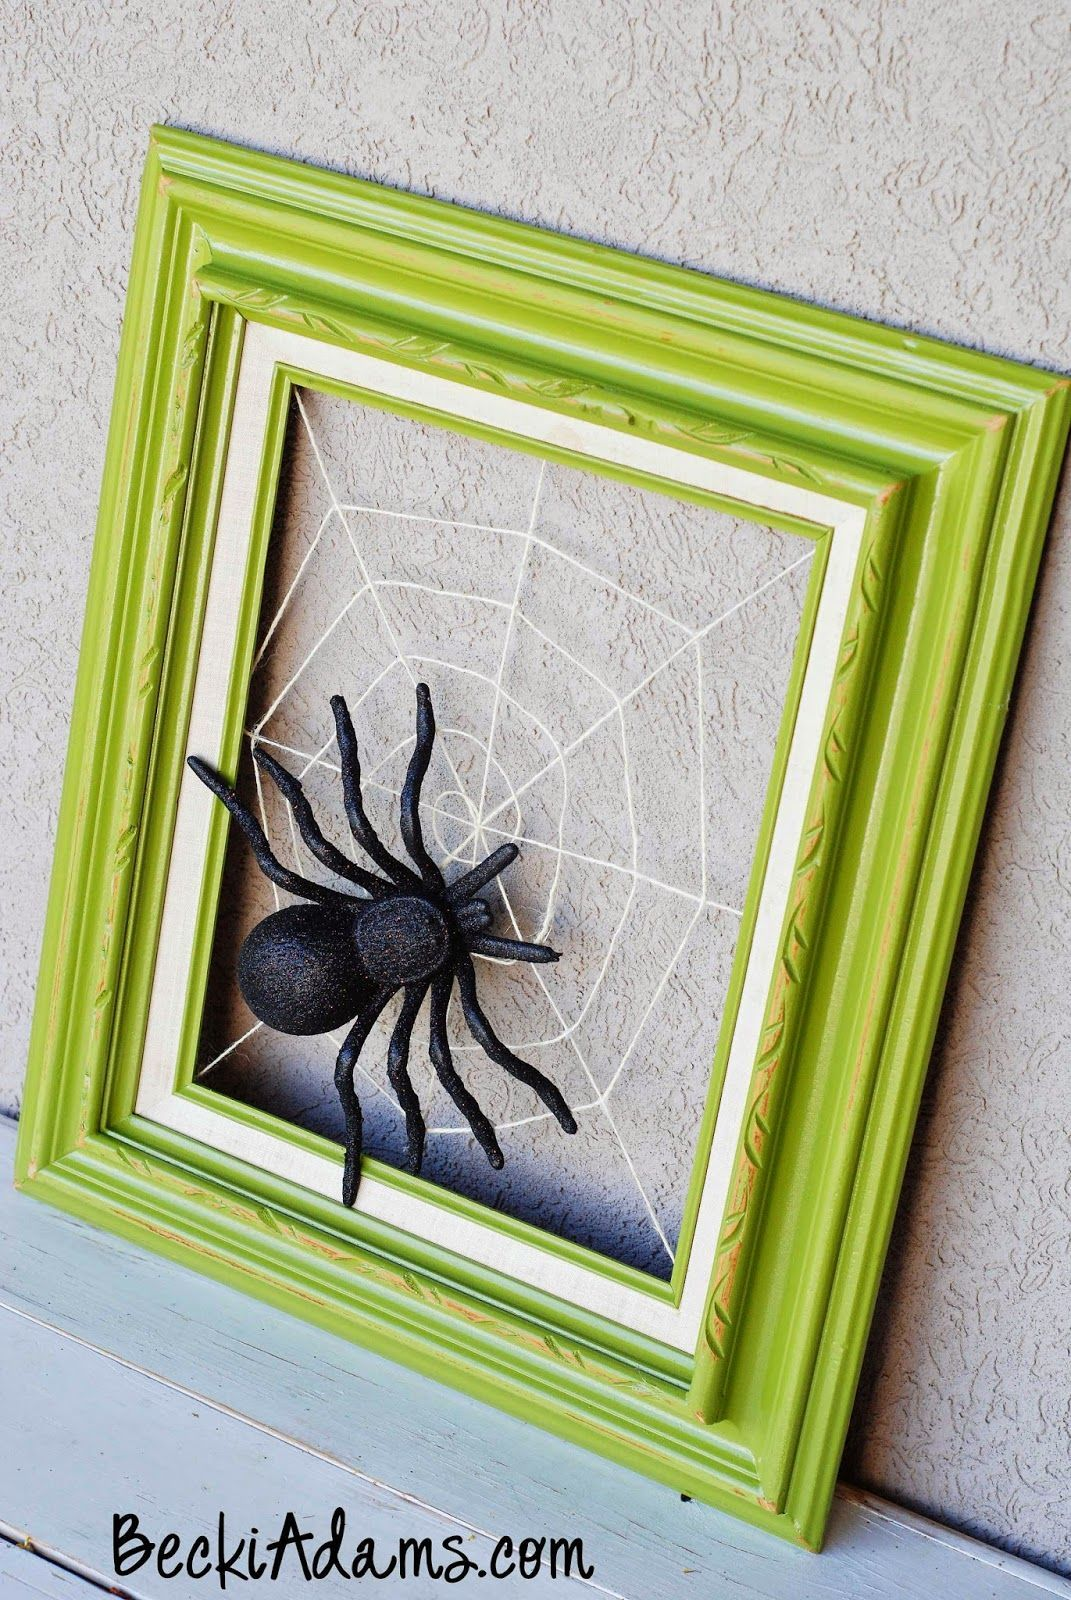 50 spooky fun and cute diy halloween decorations spider webs tutorial included for this halloween spider web frame decoration jeuxipadfo Choice Image